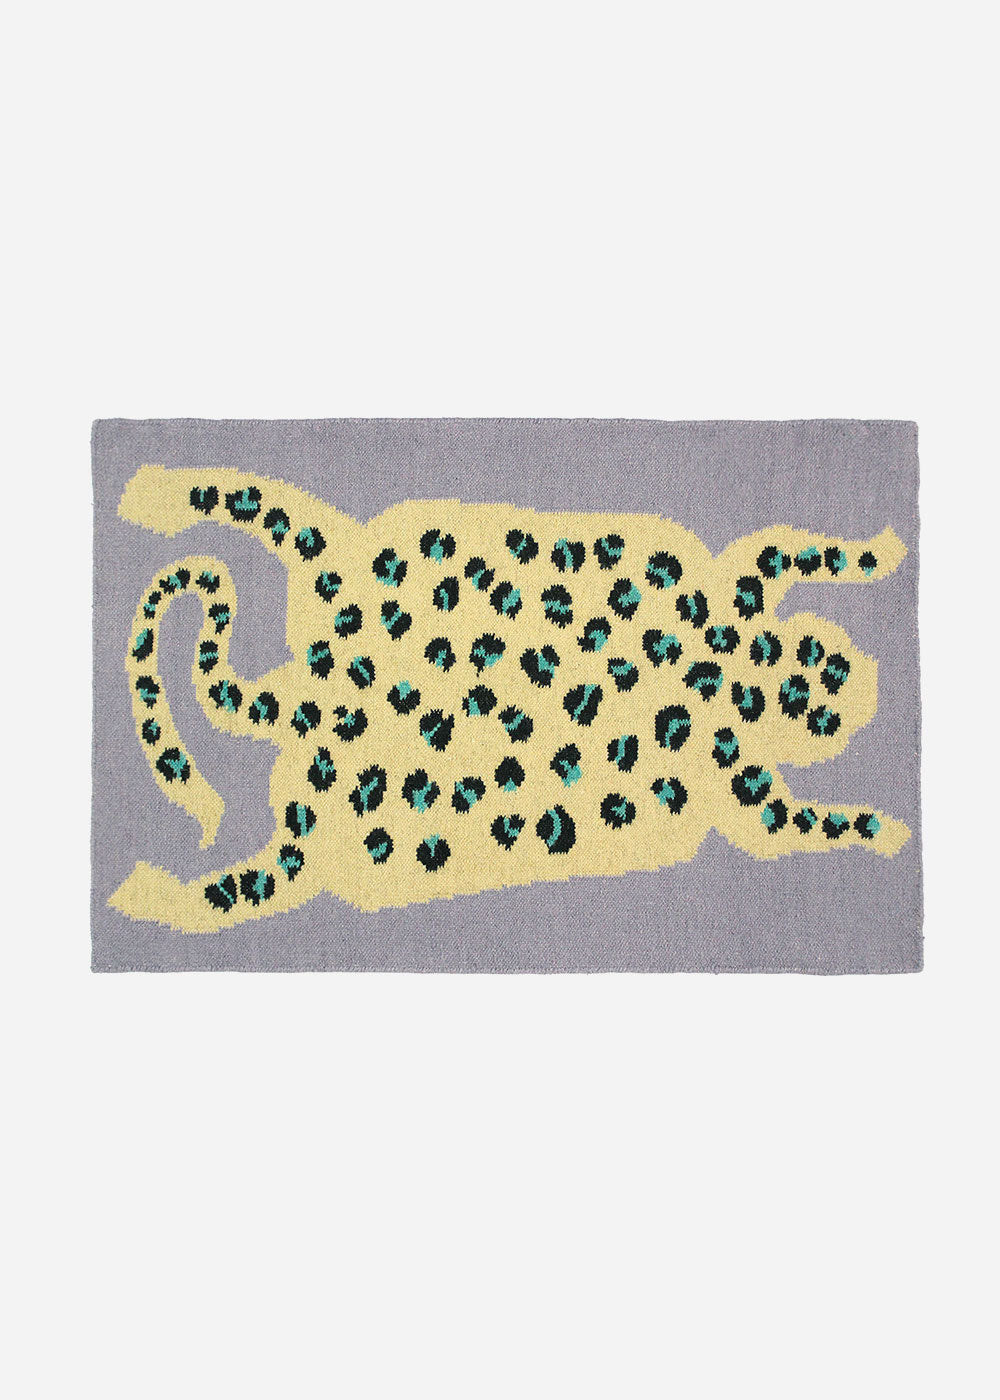 Cold Picnic Leopard Flat Weave Rug — Shop sustainable fashion and slow fashion at New Classics Studios